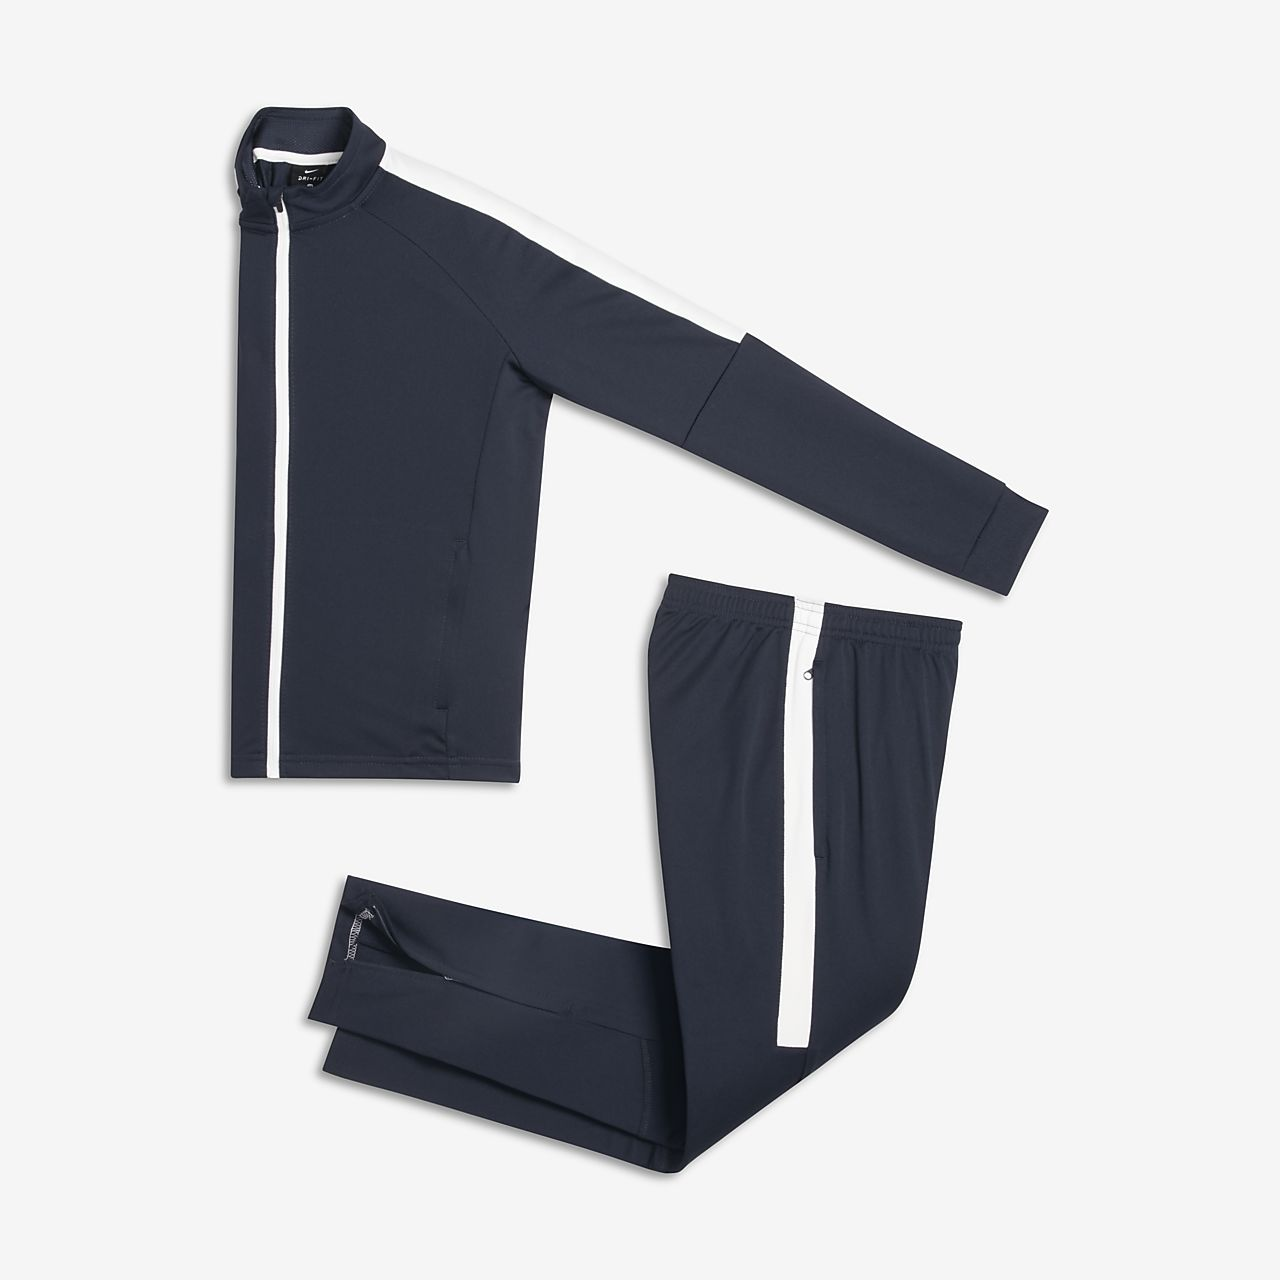 ... Nike Dri-FIT Academy Older Kids' Football Track Suit